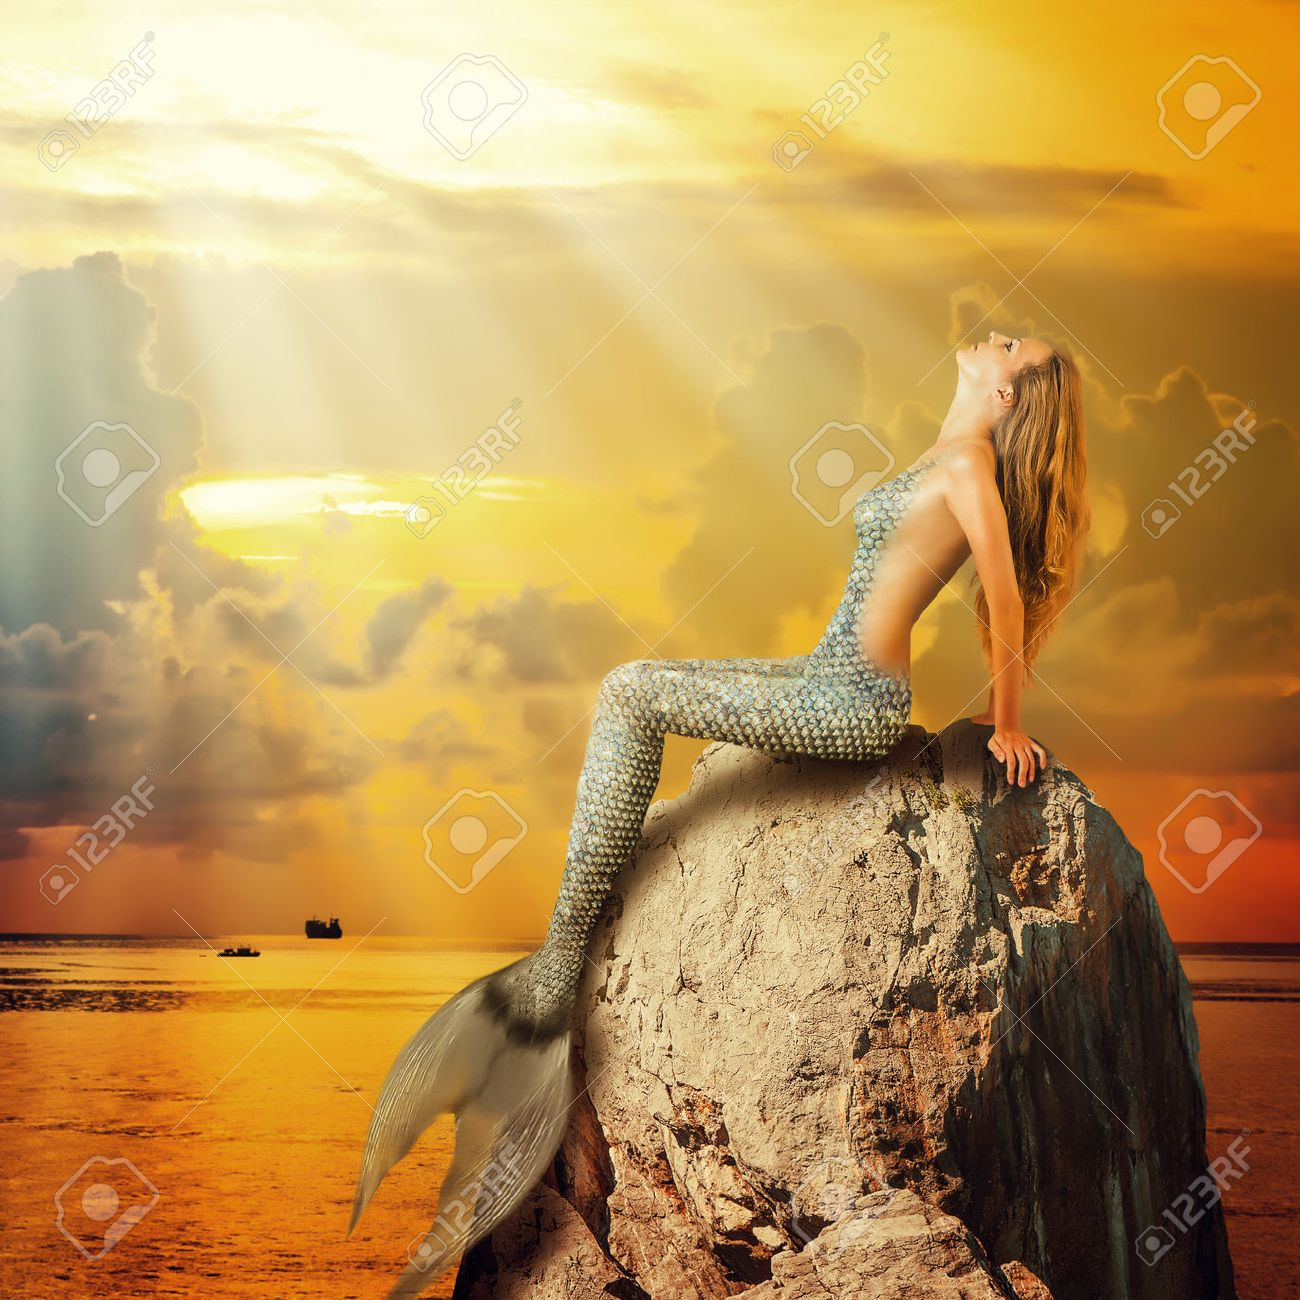 Fantasy. beautiful woman mermaid with fish tail and long developing hair swimming in the sea underwater Stock Photo - 40818220